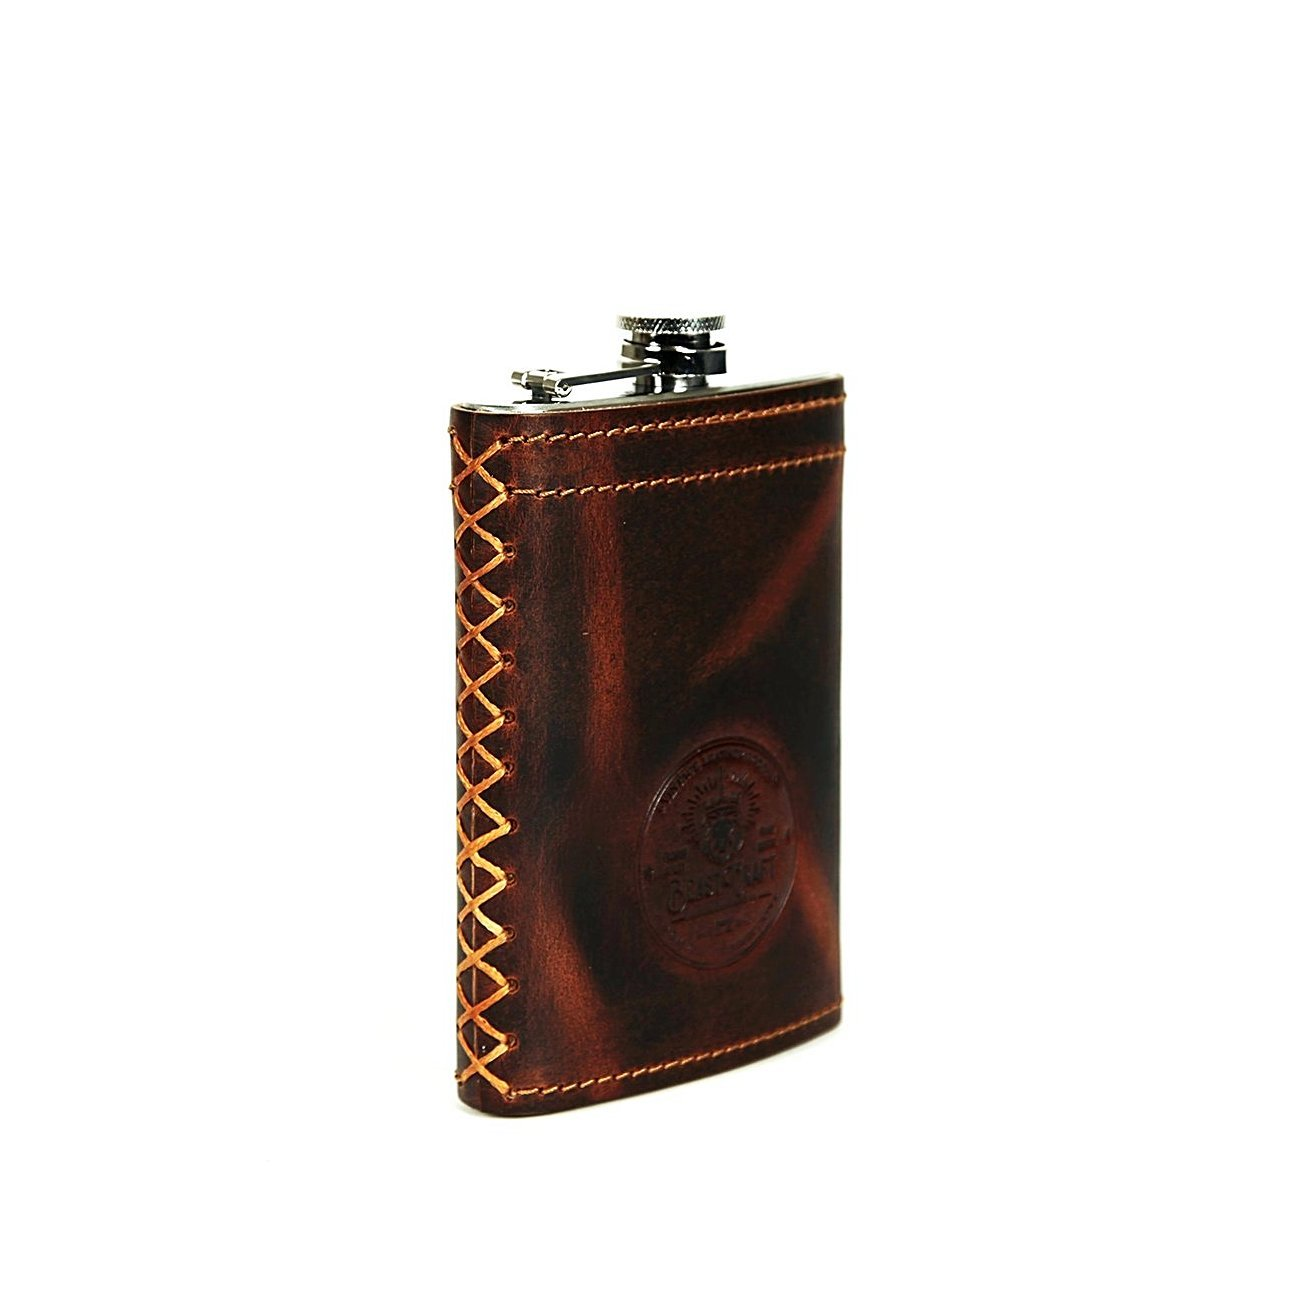 Whiskey Hip Flask 9 oz (Stainless Steel & Tobacco Tan Leather)